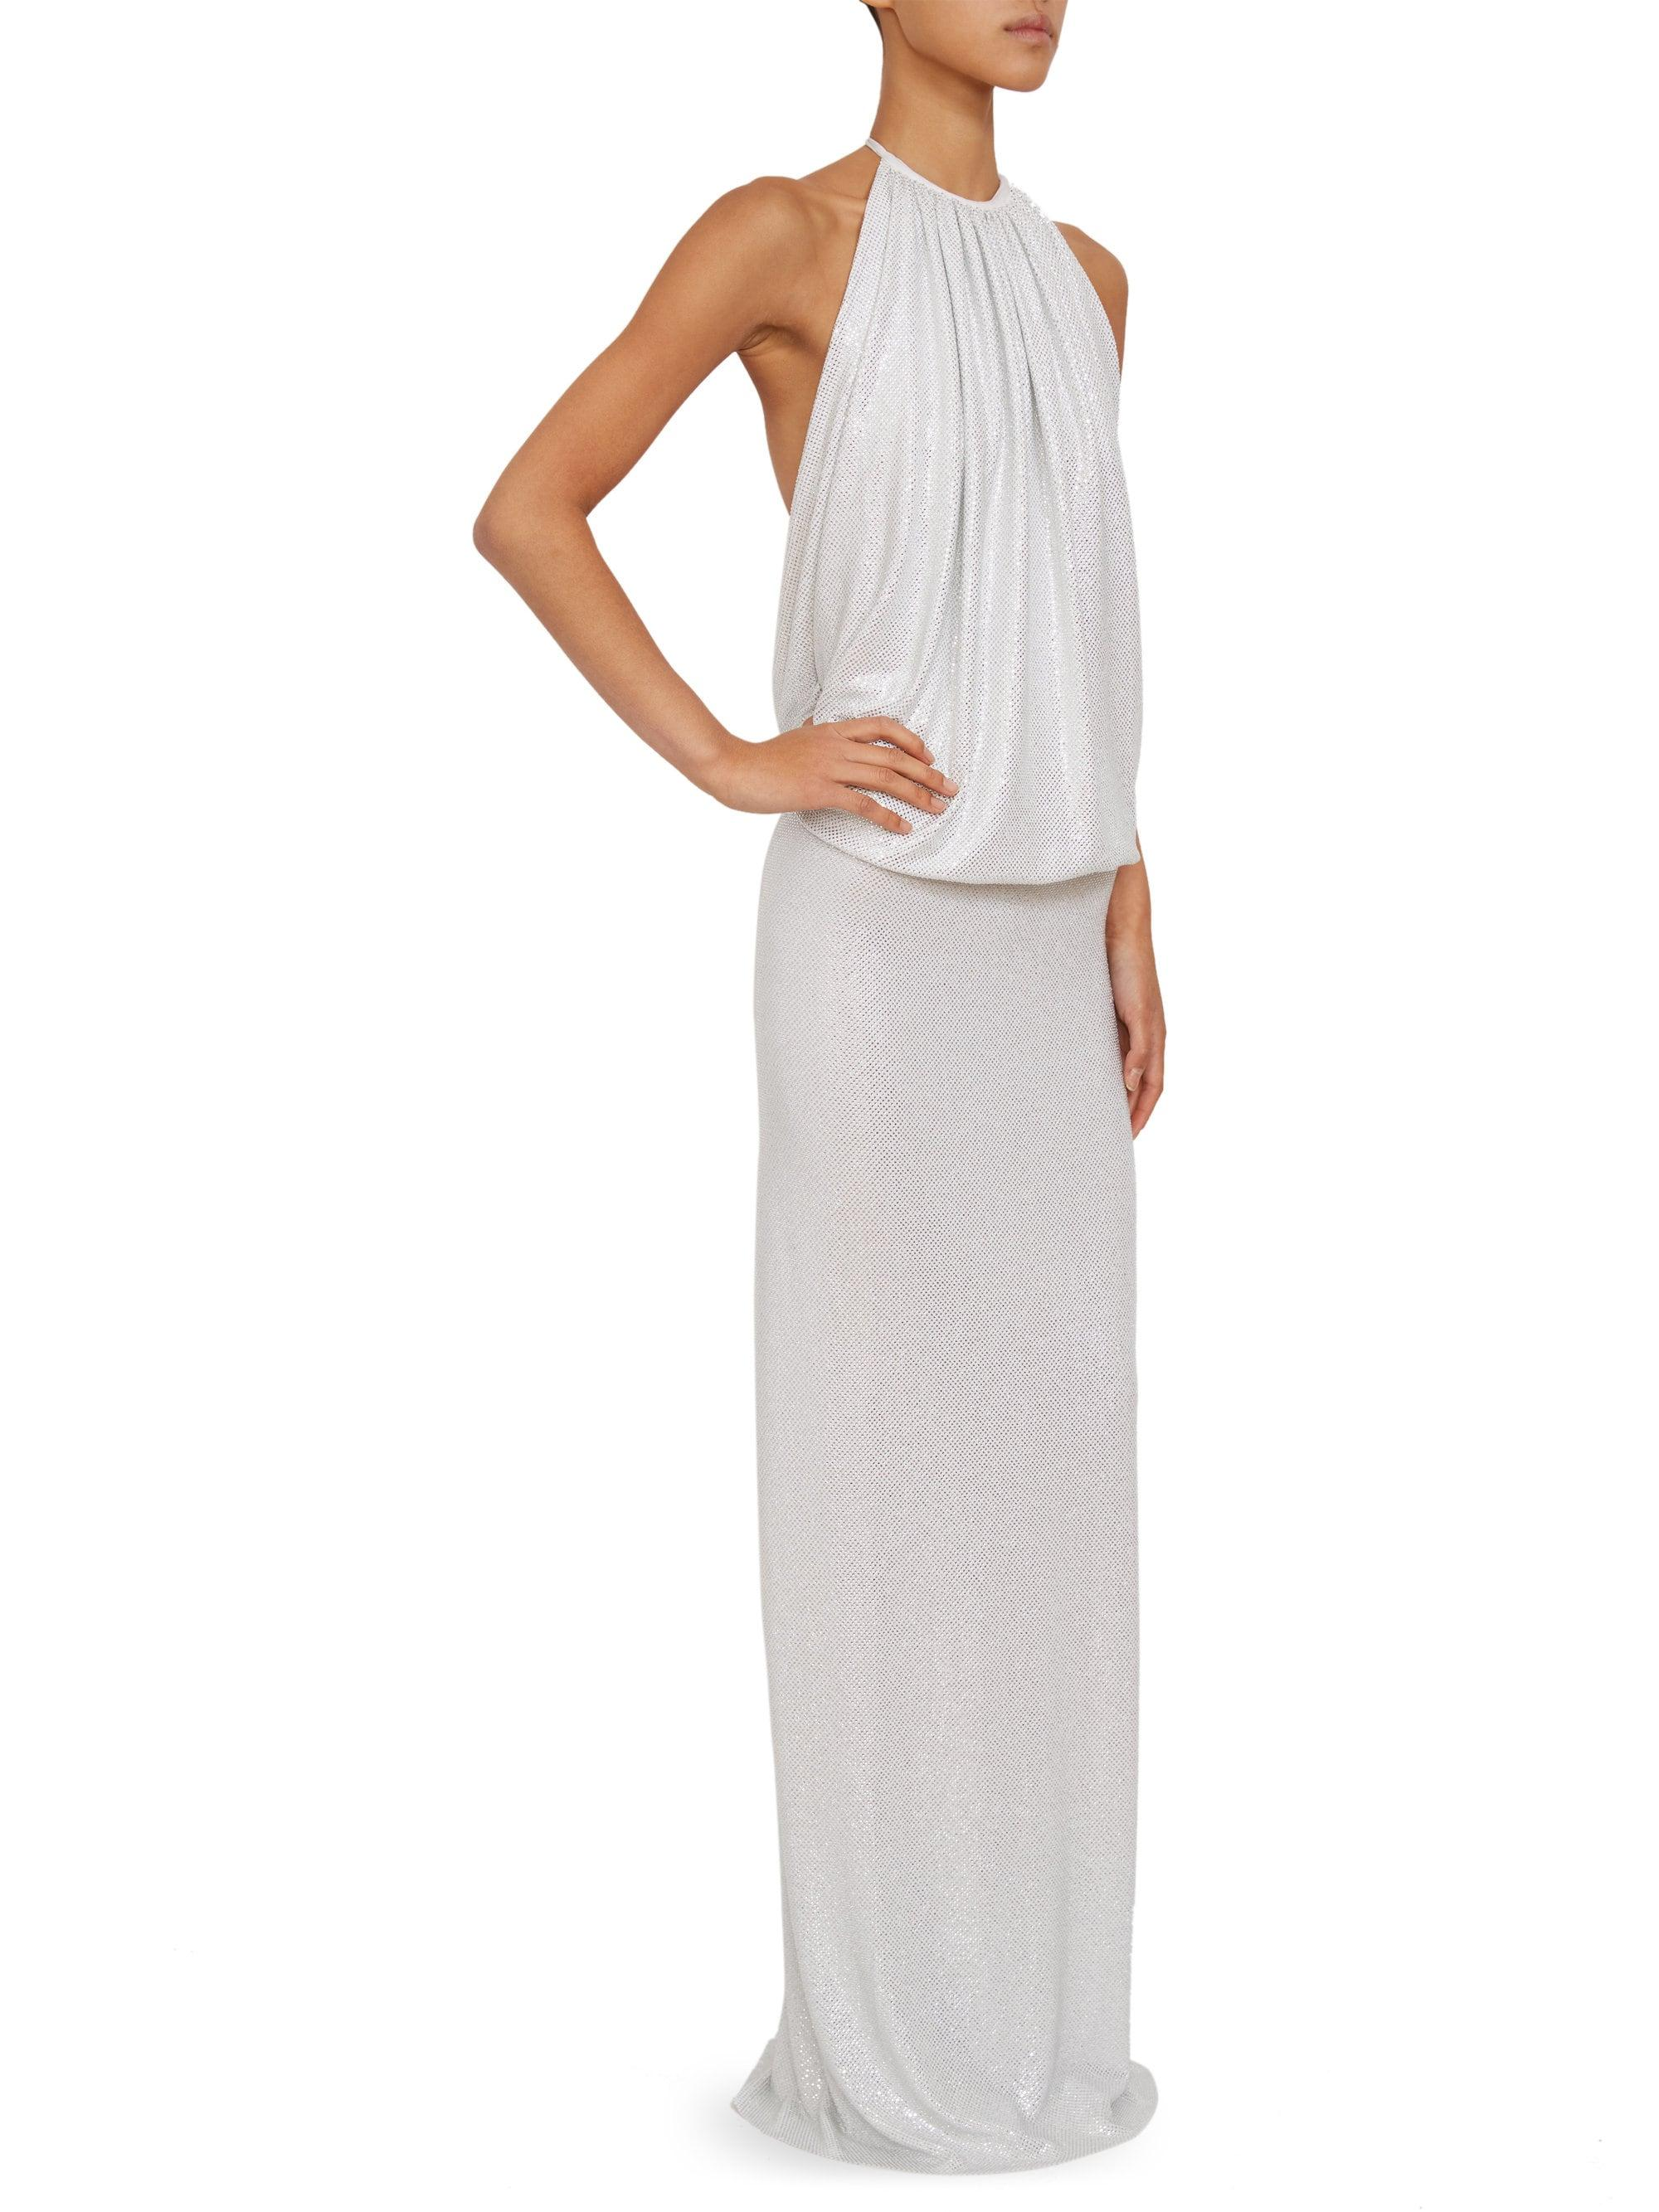 1e7321c9 Lyst - Alexandre Vauthier Microcrystal Halterneck Gown in White